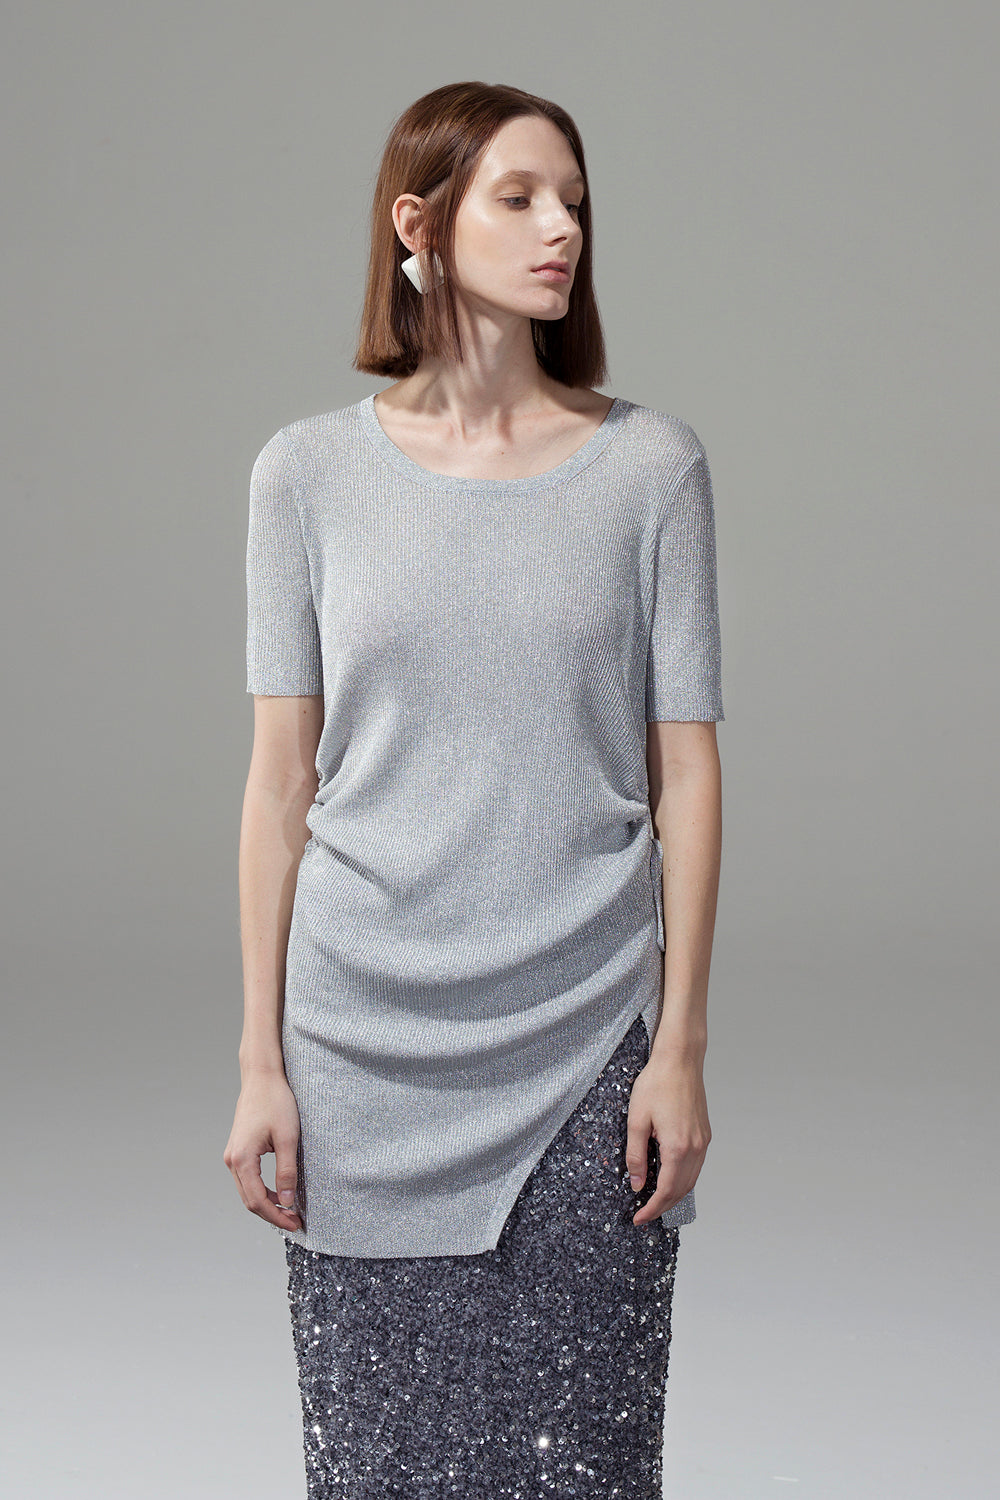 One-Slit Drawstring Knit Dress - Silver